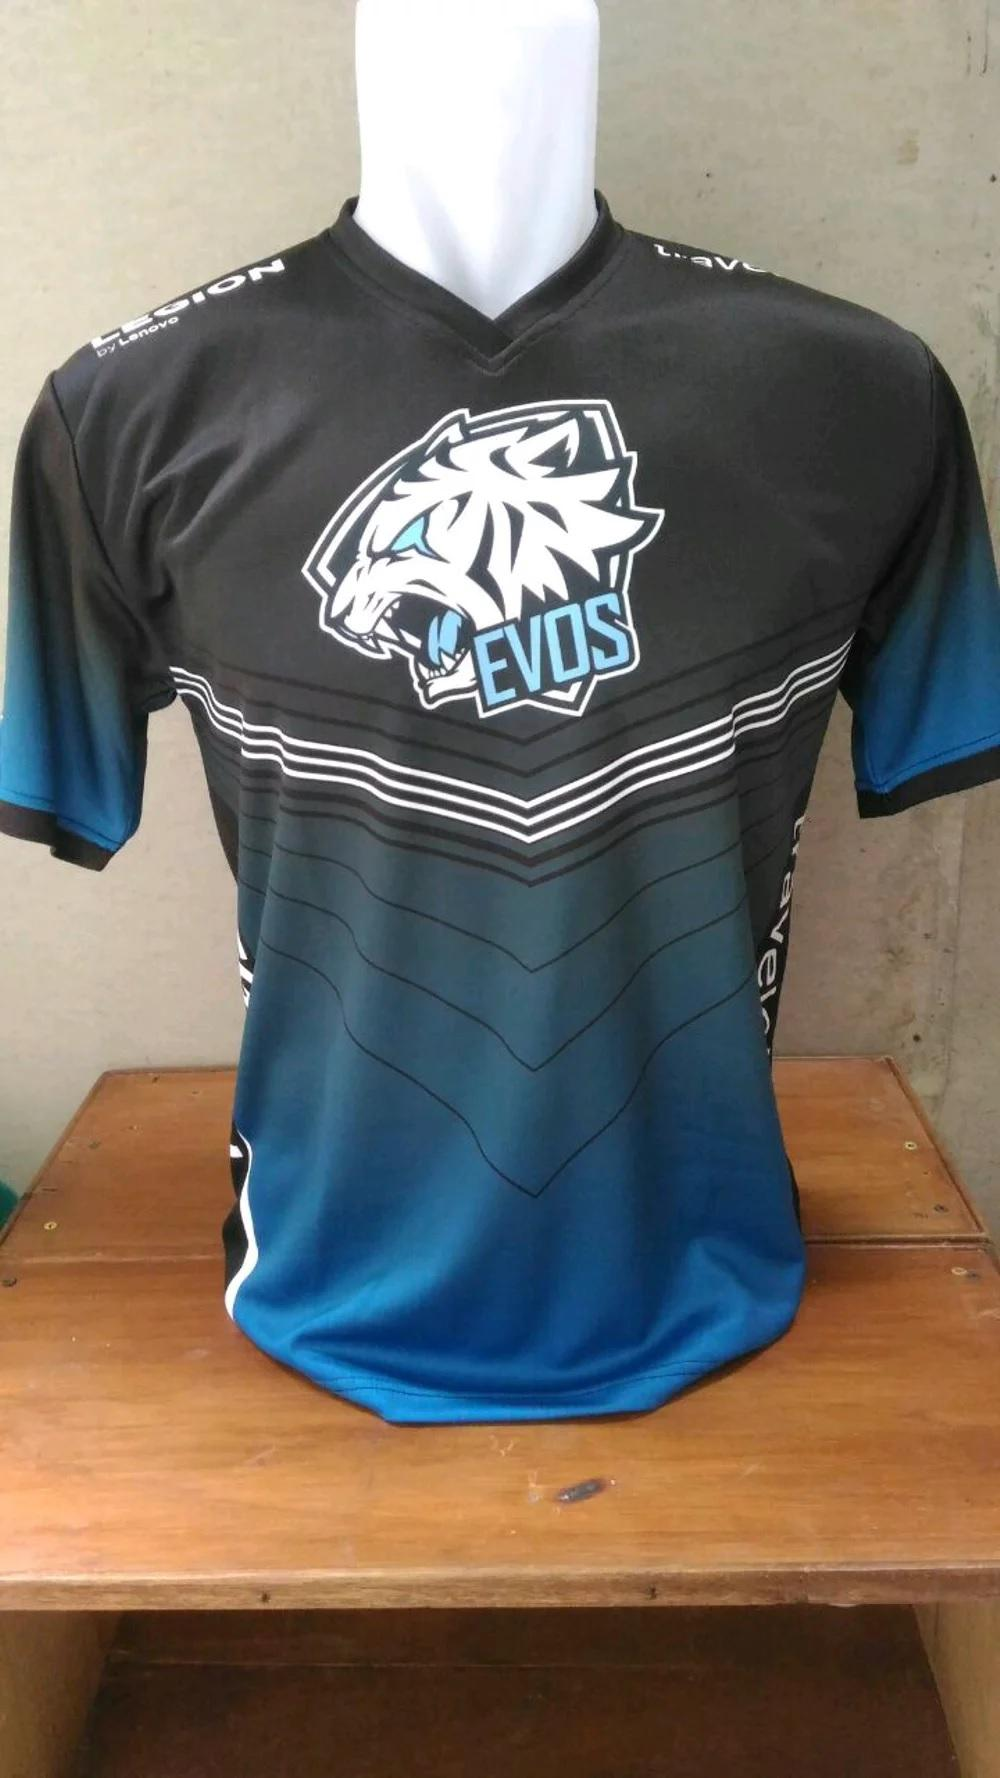 Jersey Kaos Baju Gaming Evos  Mobile Legends Dota Aov